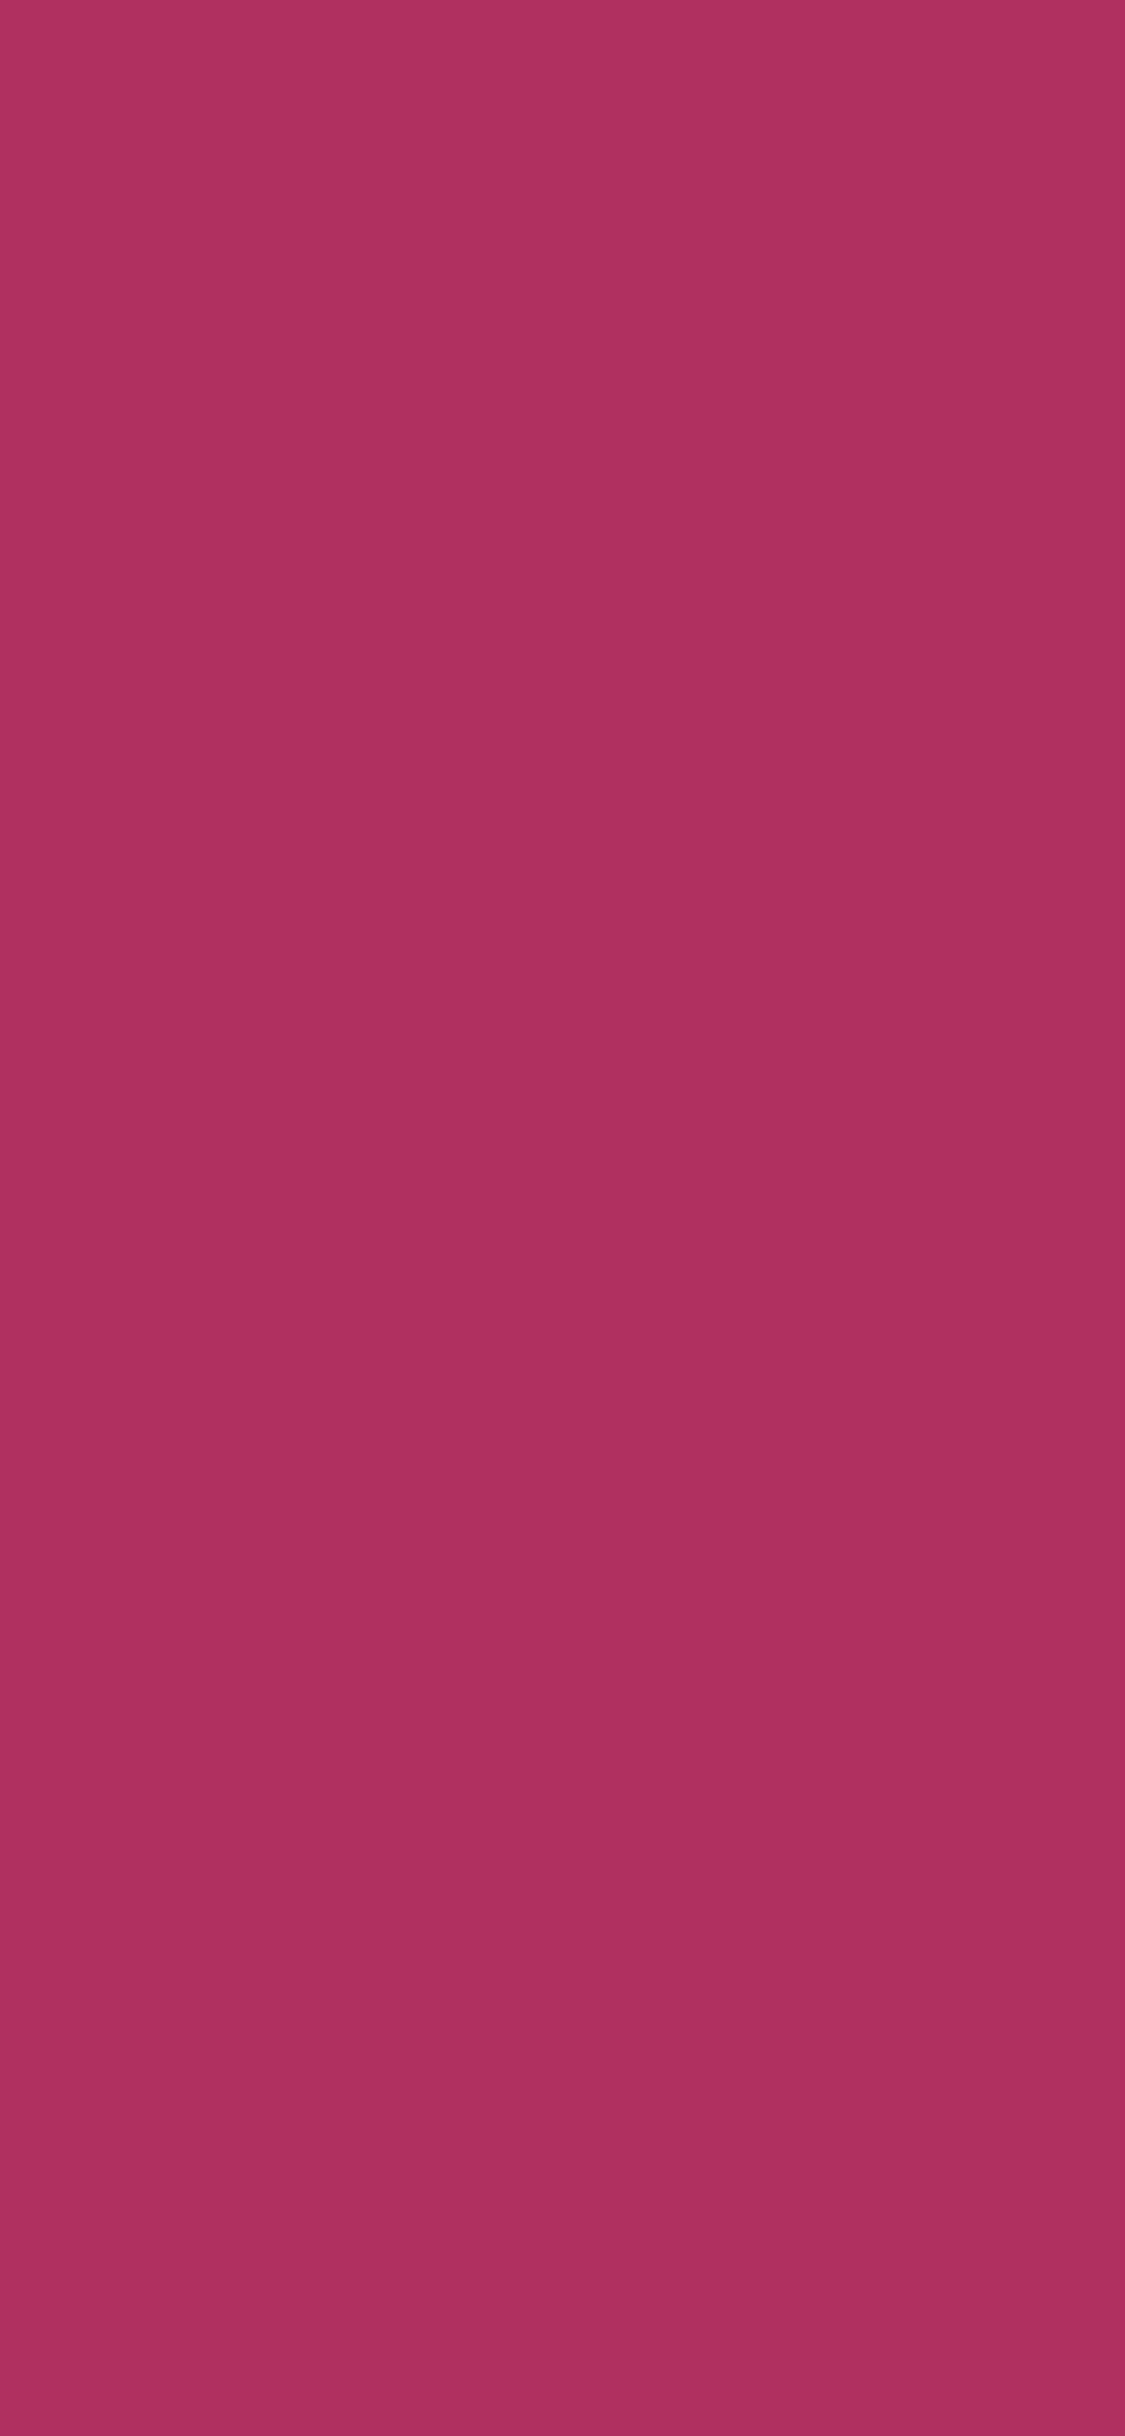 1125x2436 Rich Maroon Solid Color Background